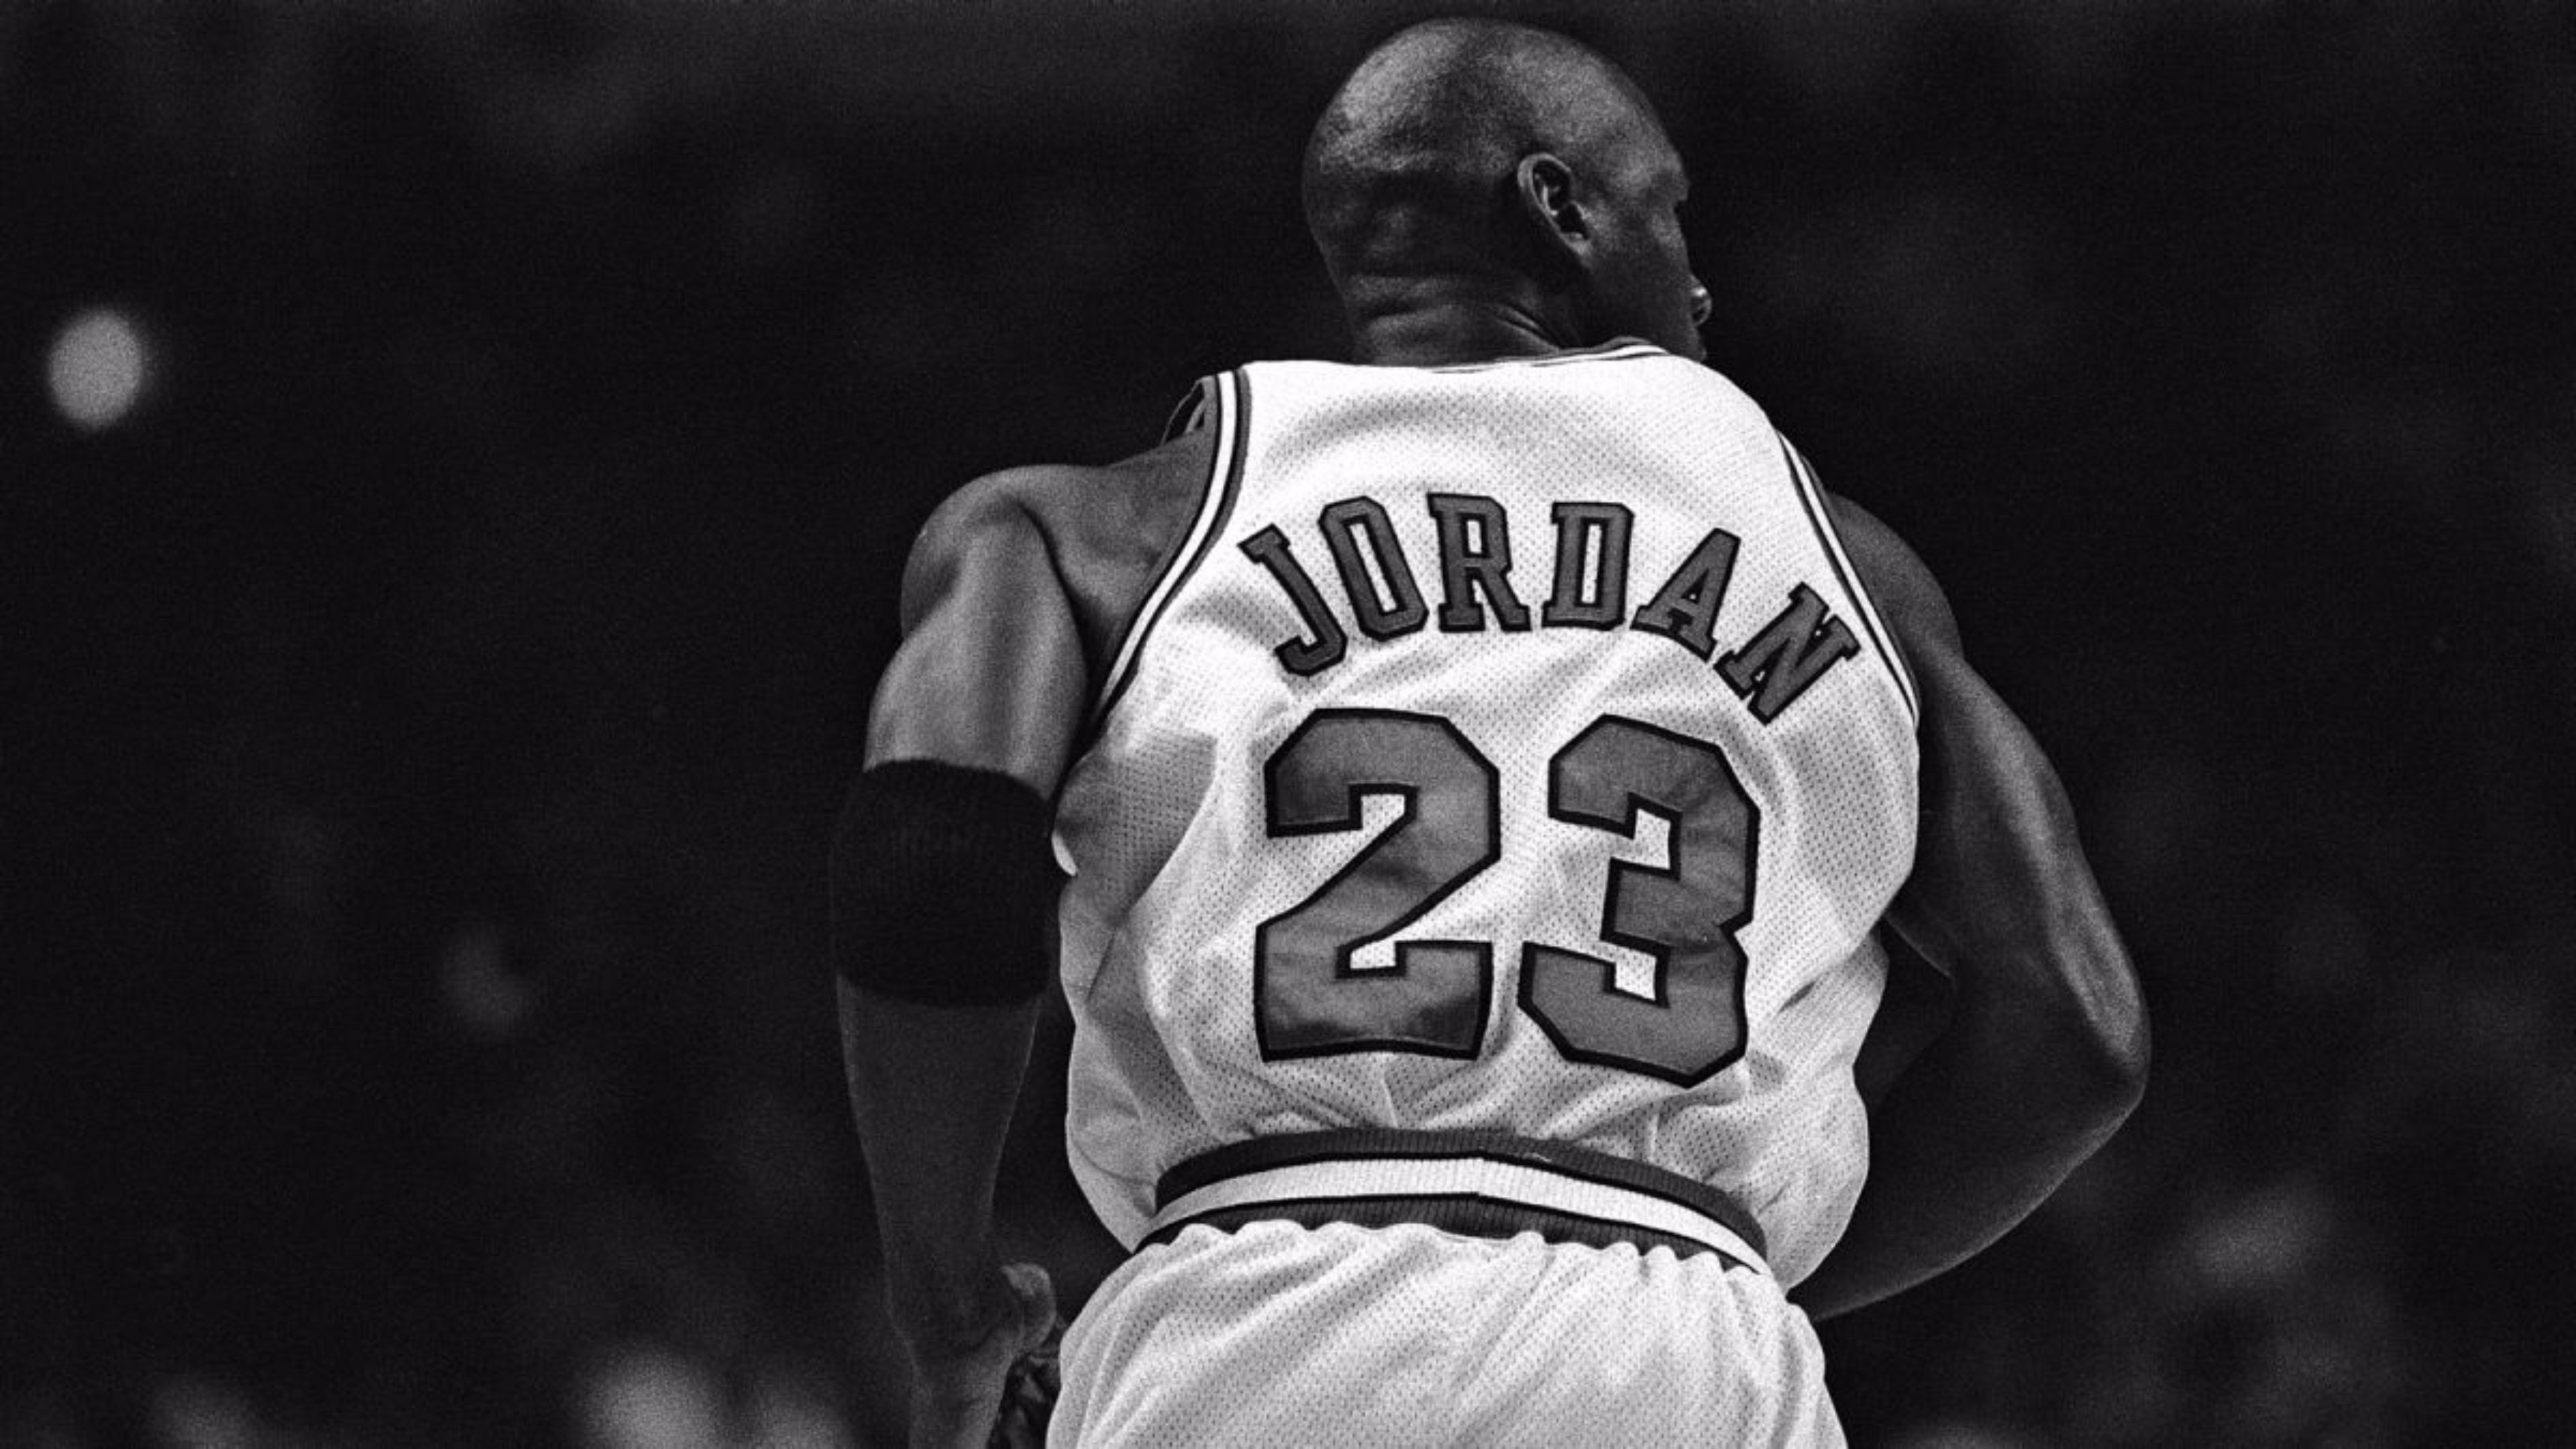 3840x2160 Michael Jordan 23 HD Wallpaper